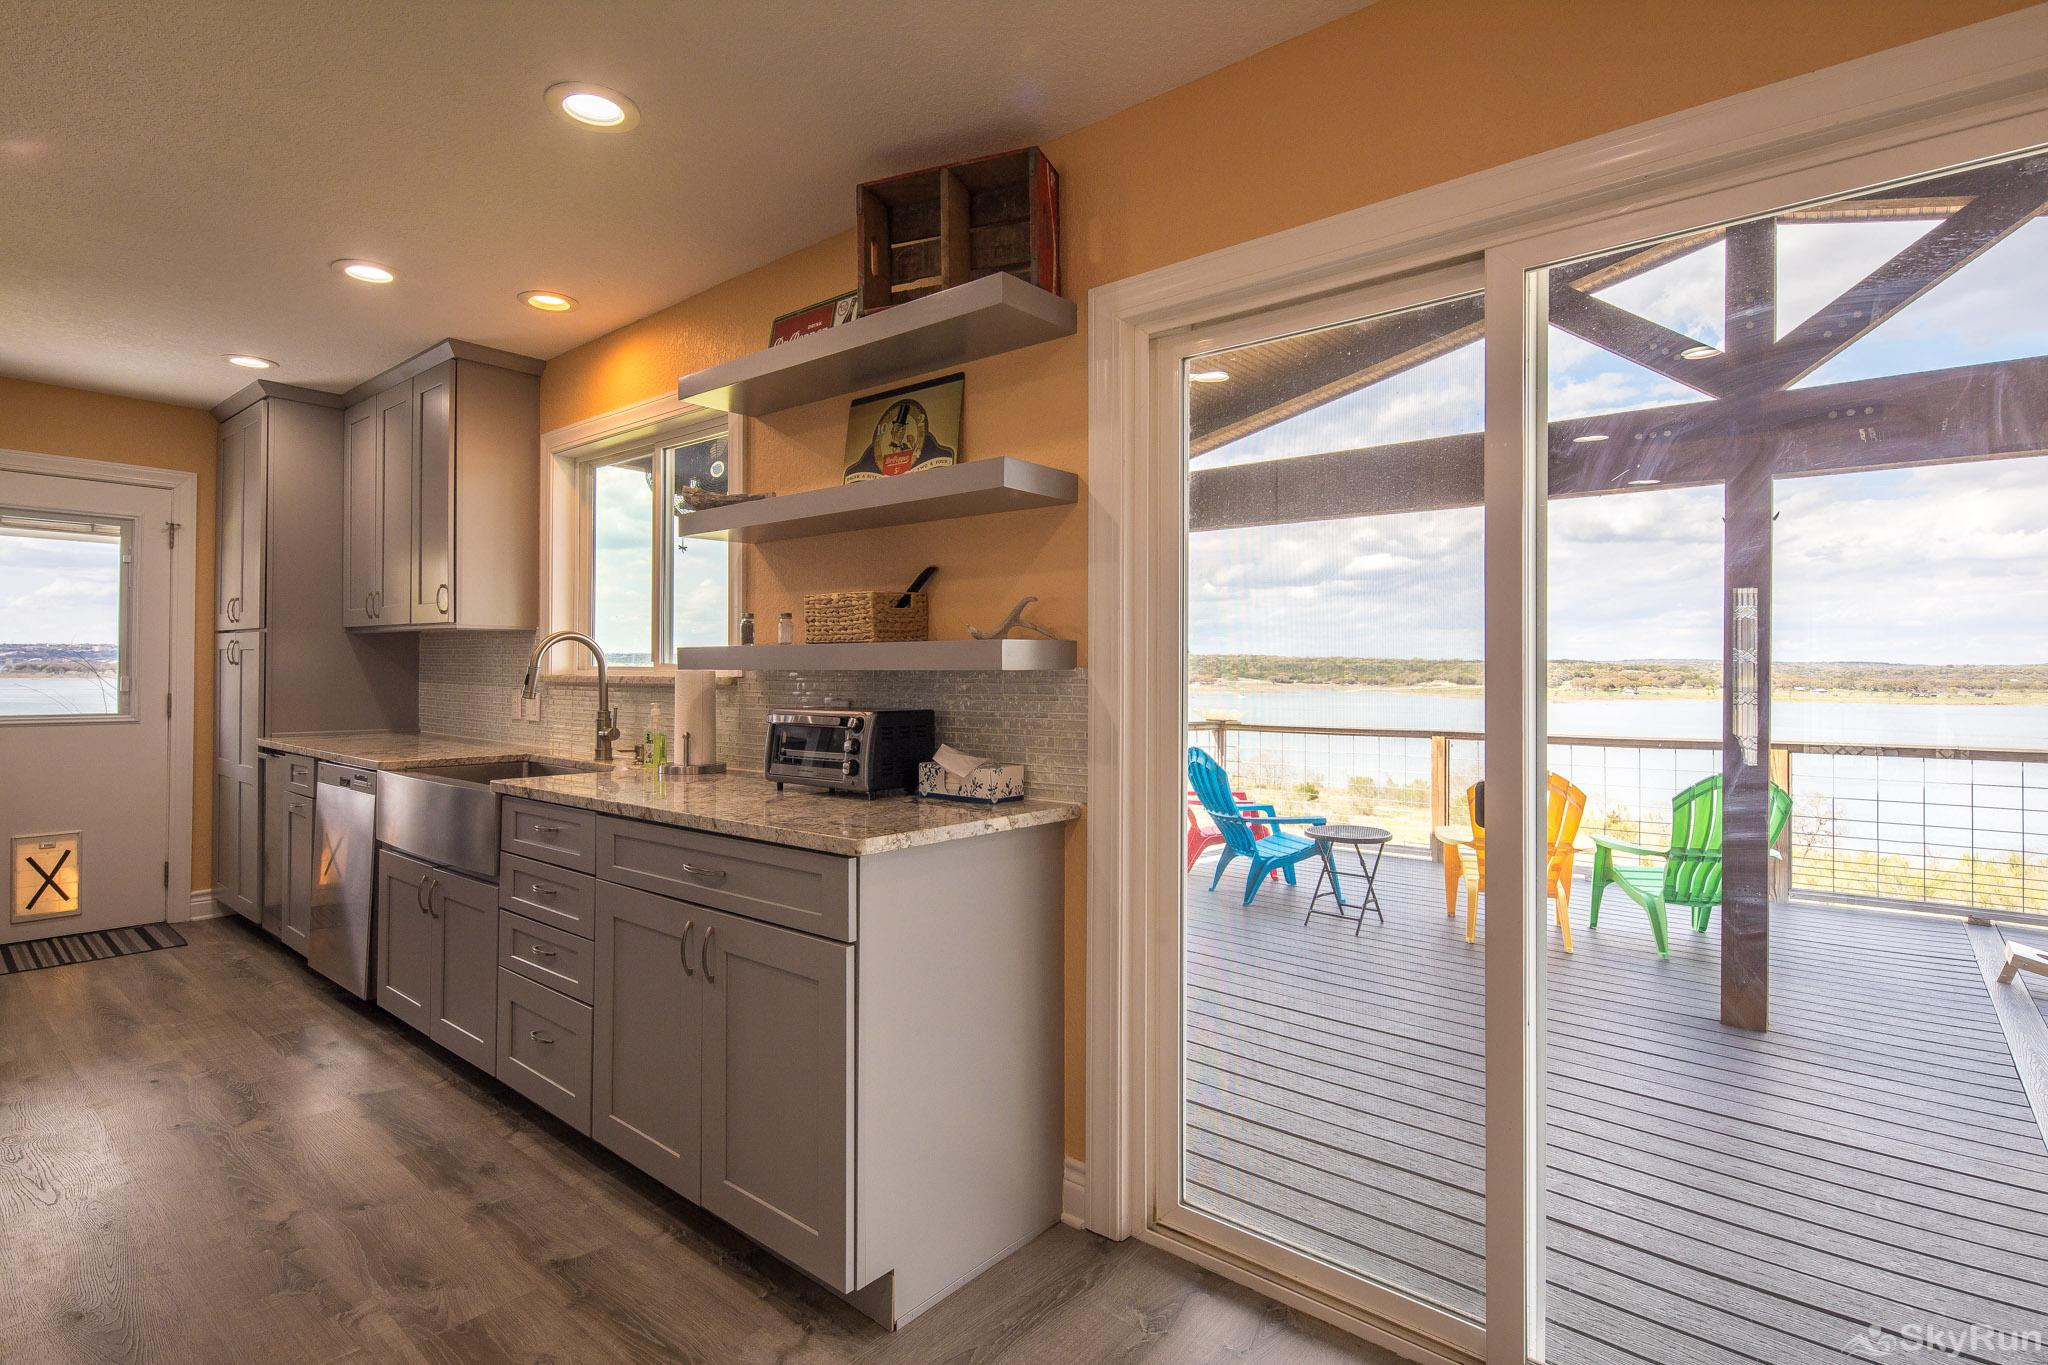 LEDGEROCK POINTE Enjoy clear views of the lake from multiple rooms